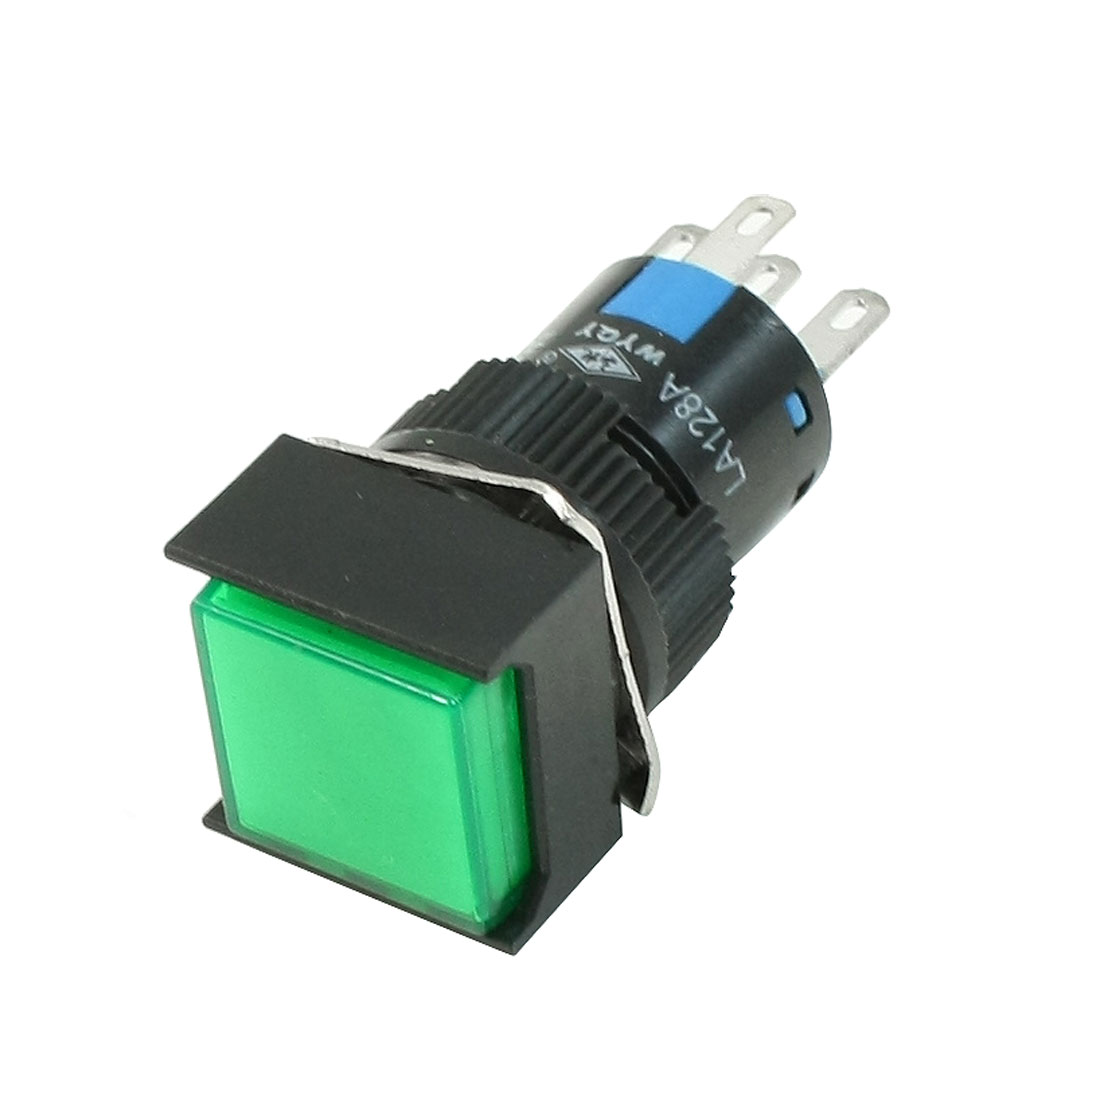 250VAC 5A SPDT 5 Pins Momentary Green Square Push Button Switch w 220V LED Light